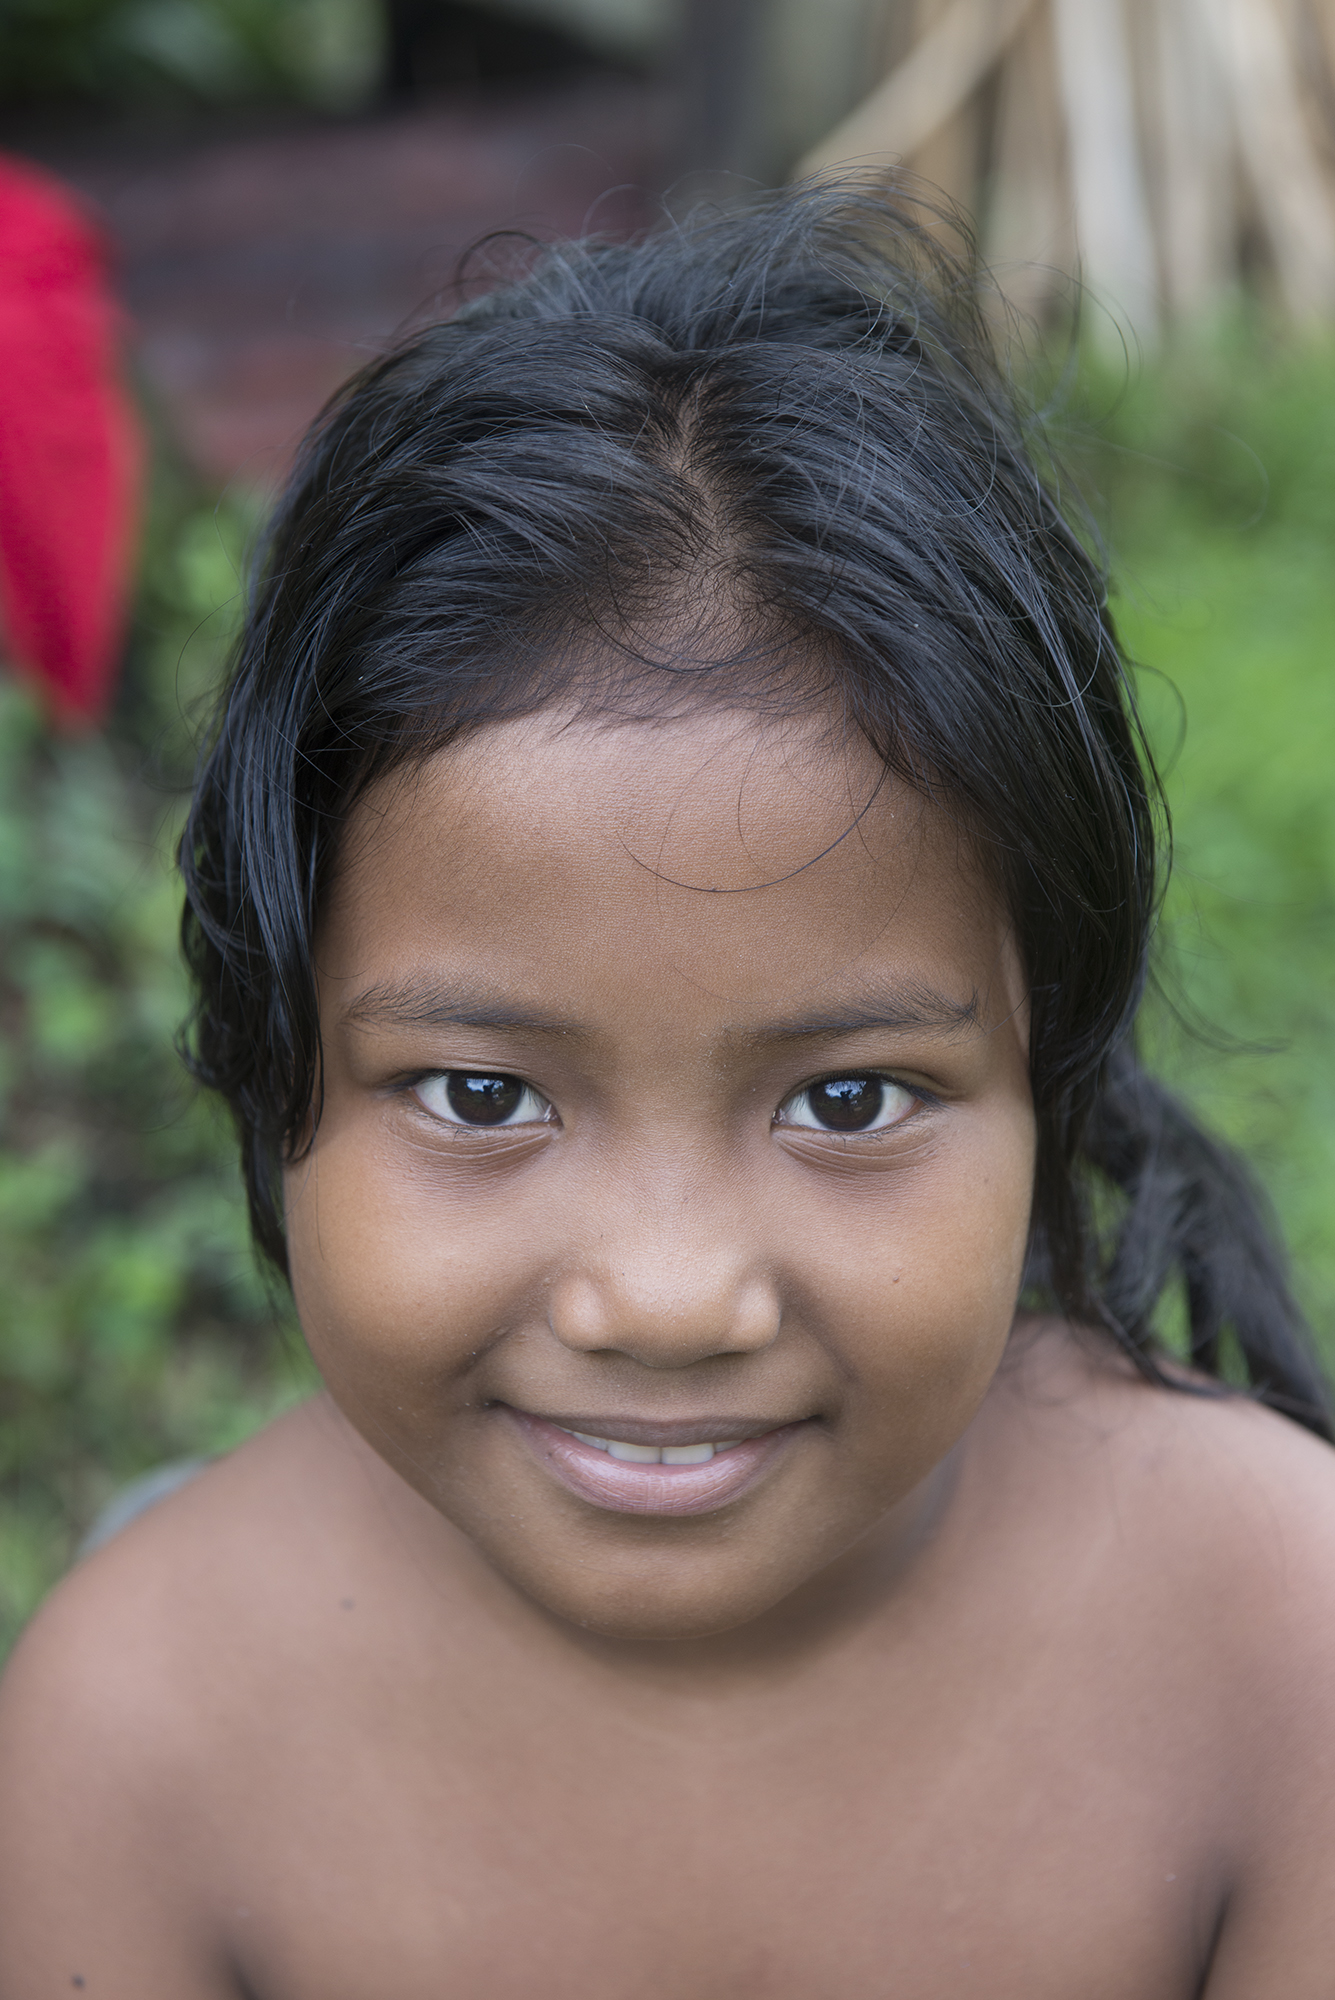 <p>This girl&#8217;s family is from Chuuk. Her family patriarch, Sam Saul, moved to Pohnpei as a young man after a storm devastated his home island.</p>